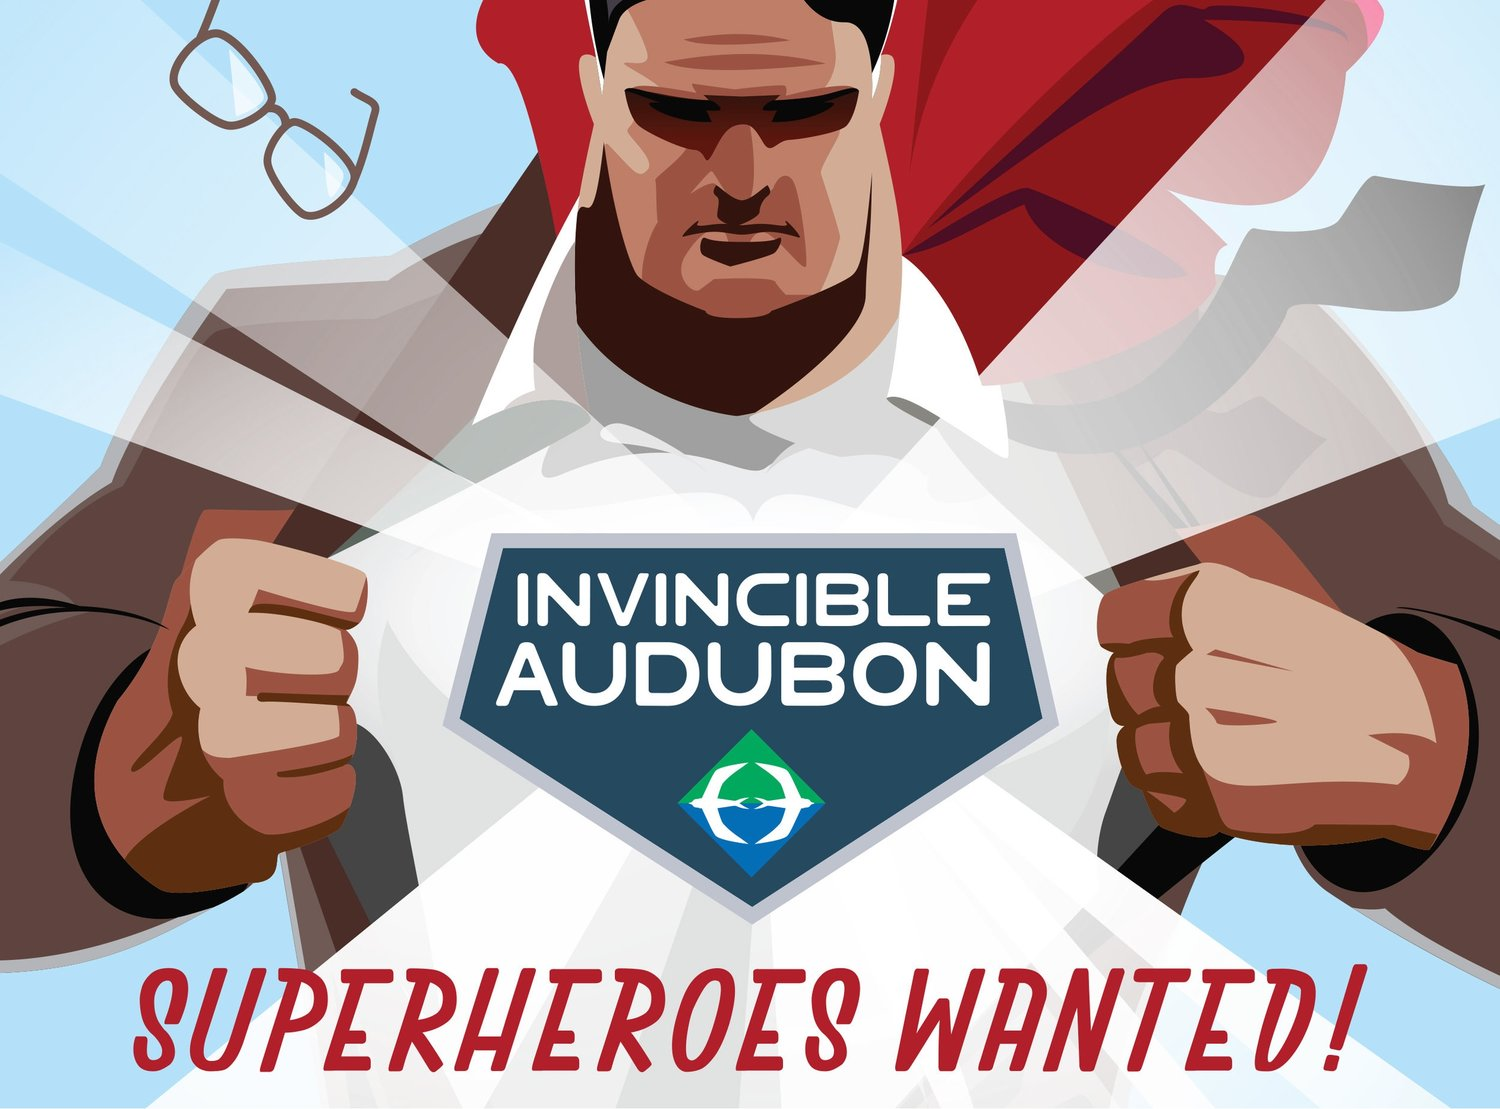 Invincible Audubon